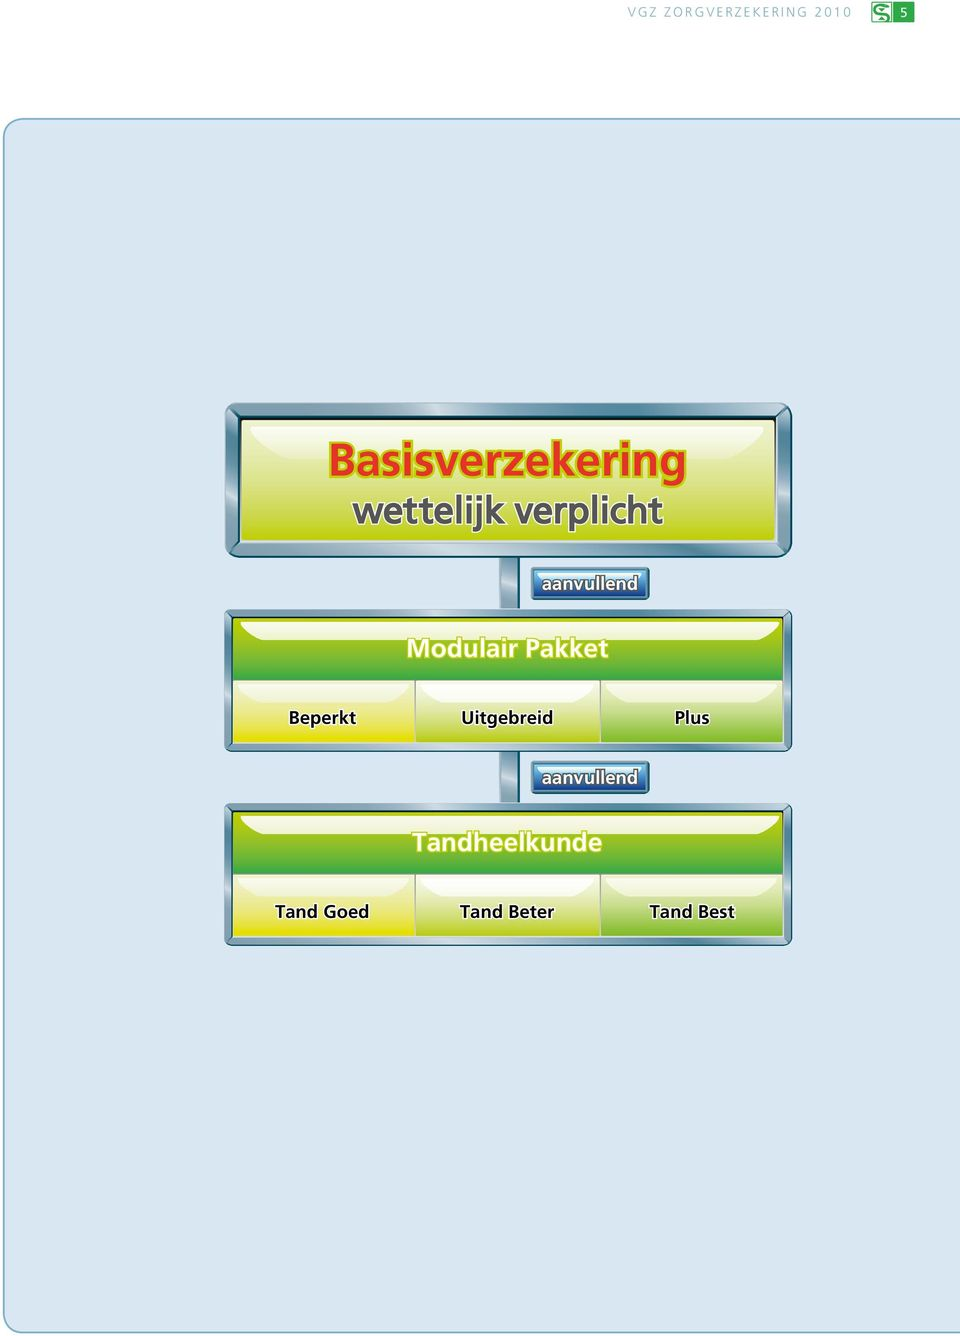 aanvullend Tandheelkunde Tand Goed Tand Beter Tand Best Optie 2